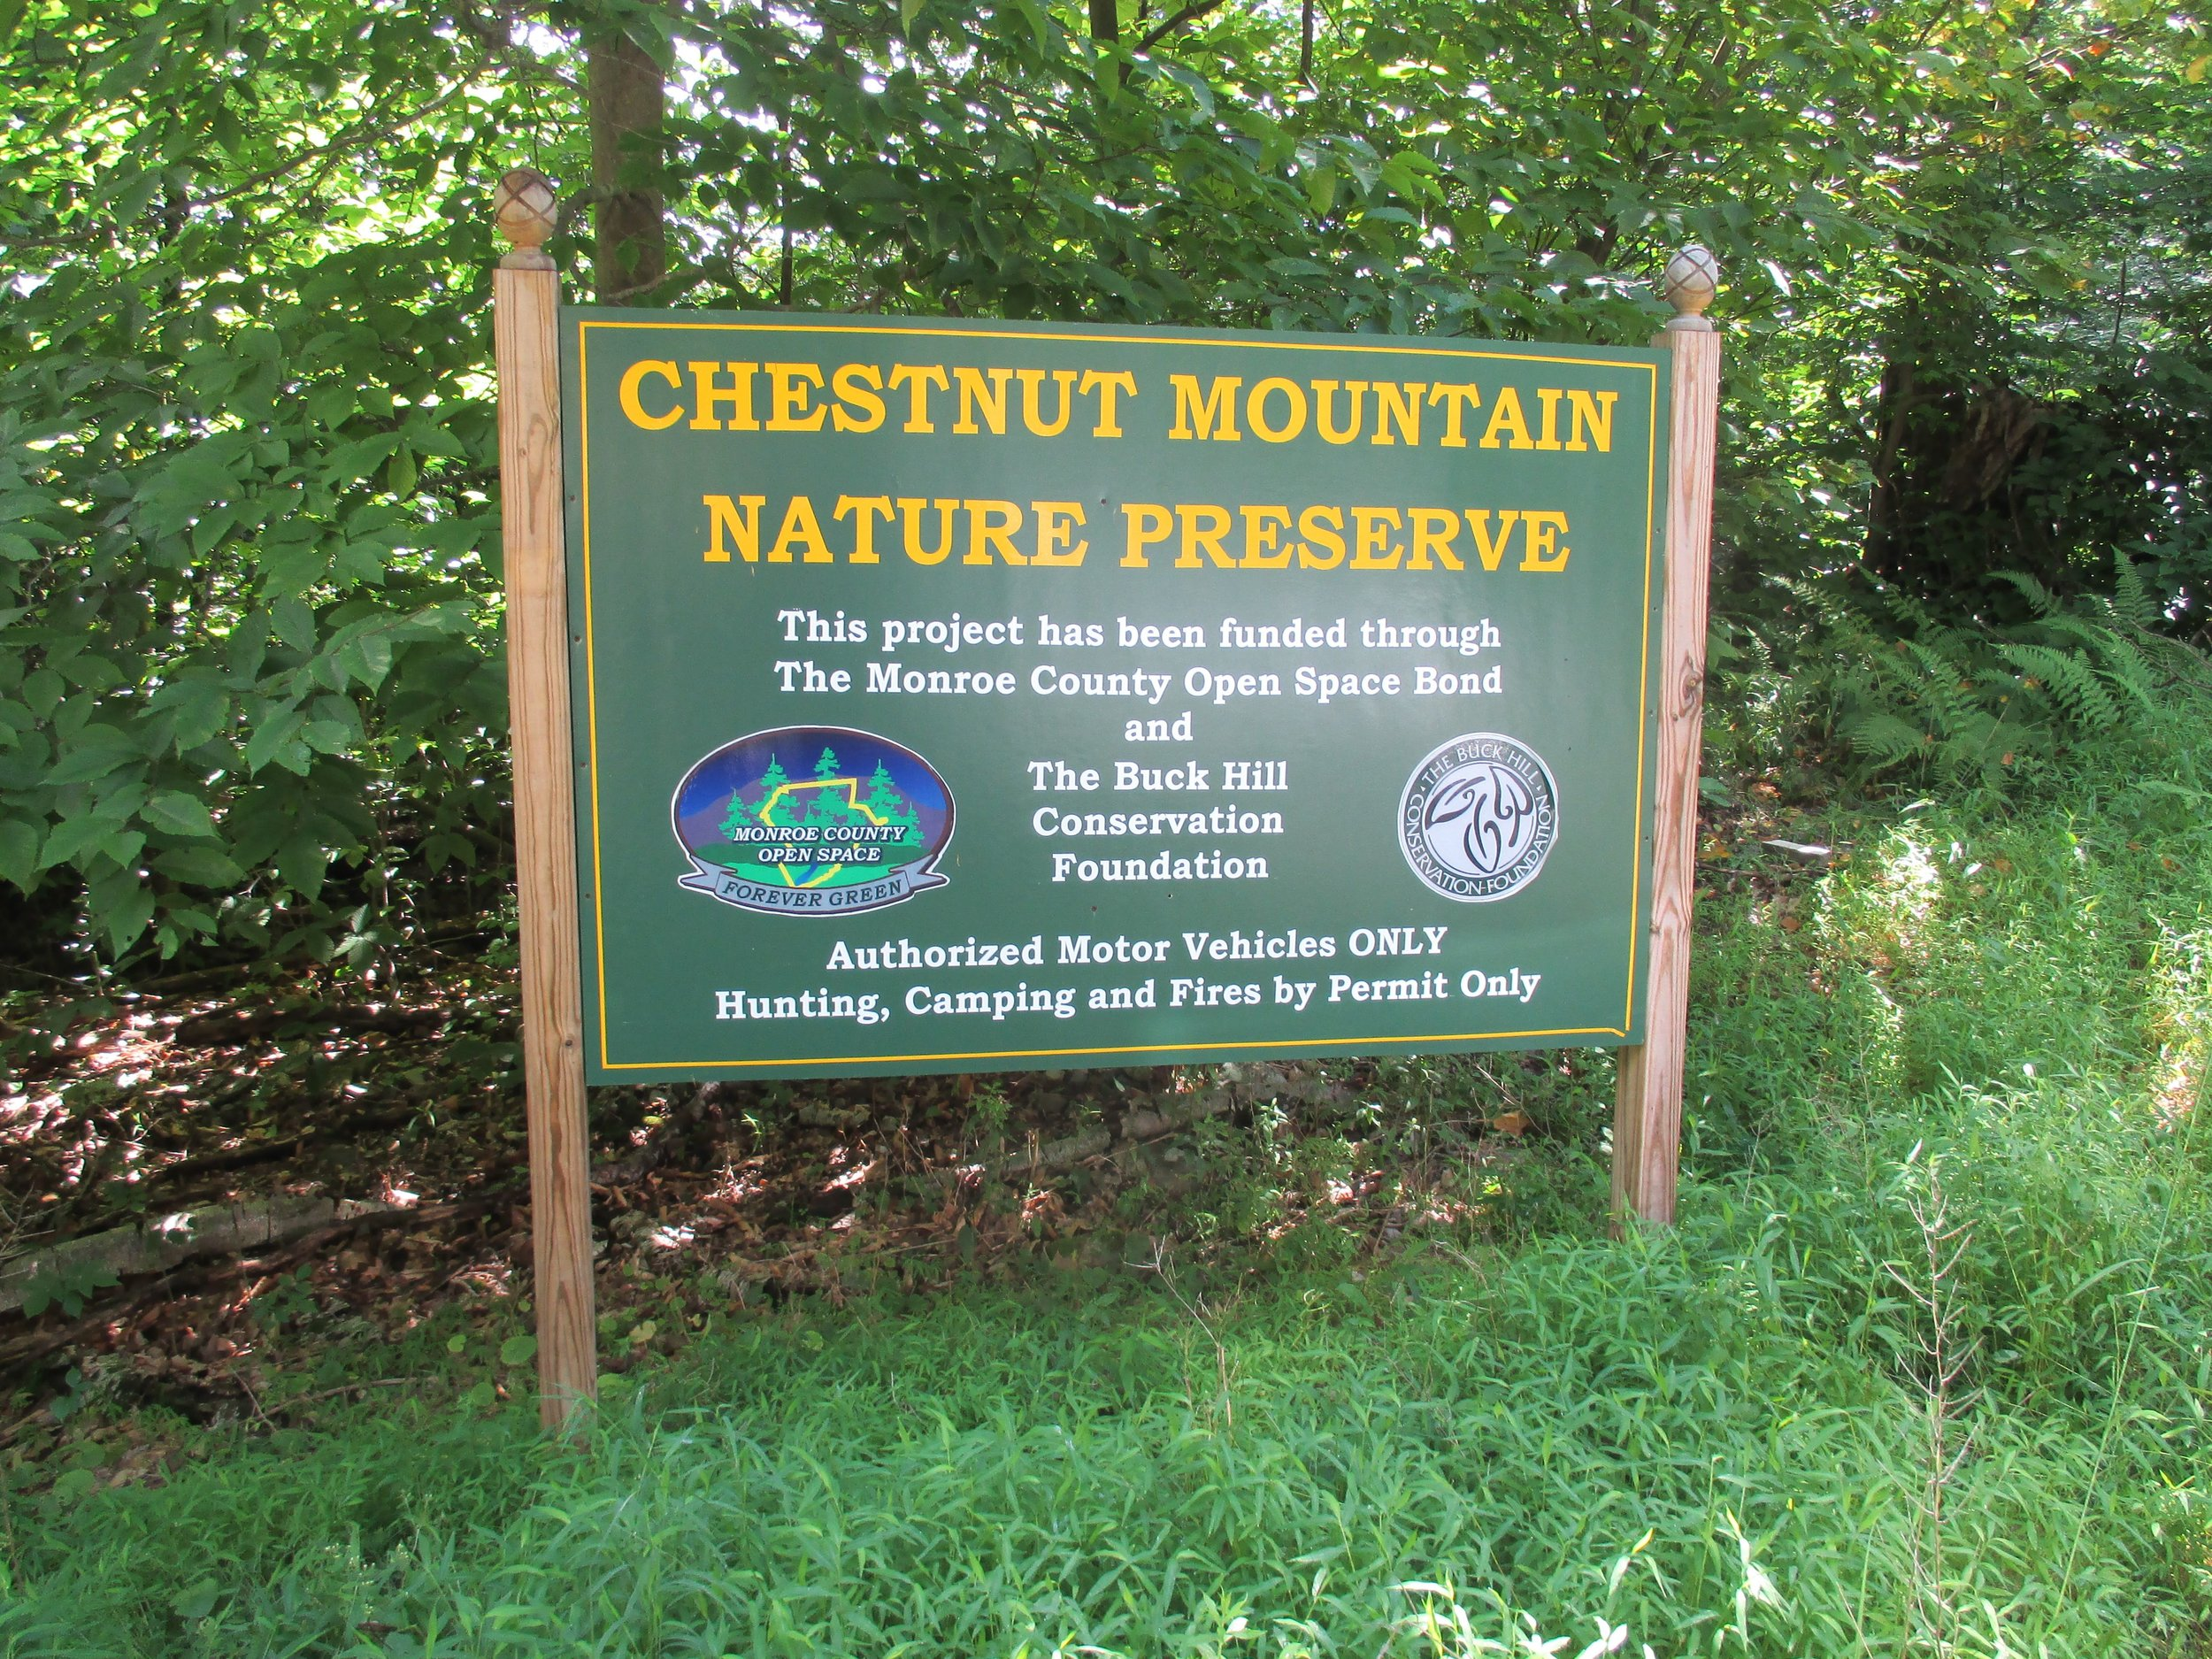 CHESTNUT MOUNTAIN - Chestnut Mountain trails feature educational signs about forest regeneration. The 2.8 mile Blue Trail has a scenic vista at the overlook. The 1.2 mile Red Trail takes hikers shows characteristics of a healthy forest.